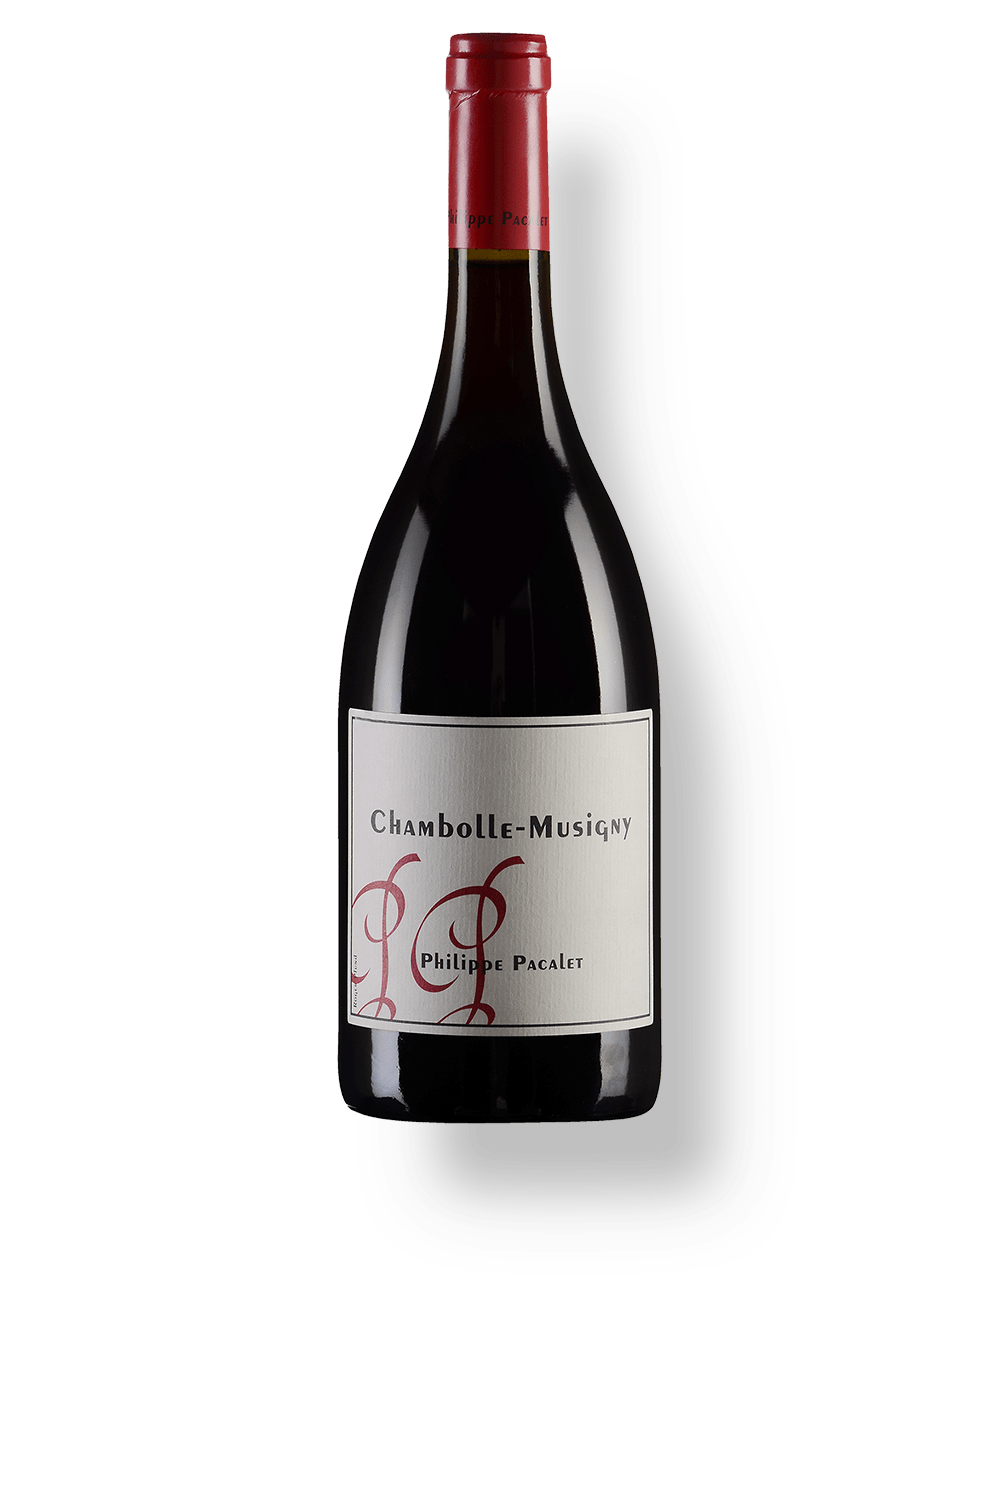 Vinho_Tinto_Chambolle-Musigny_2011_Philippe_Pacalet_Bourgogne_Pinot_Noir_Franca